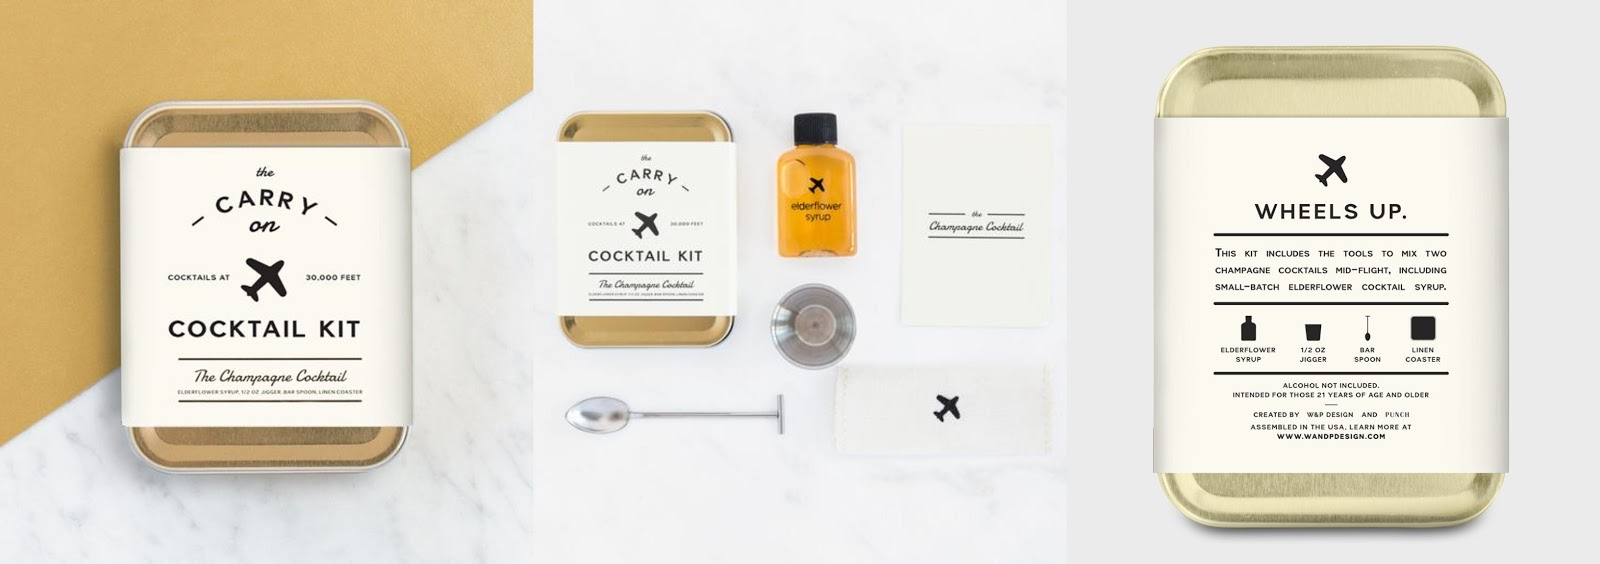 W&P Design Carry On Cocktail Kit in Champagne